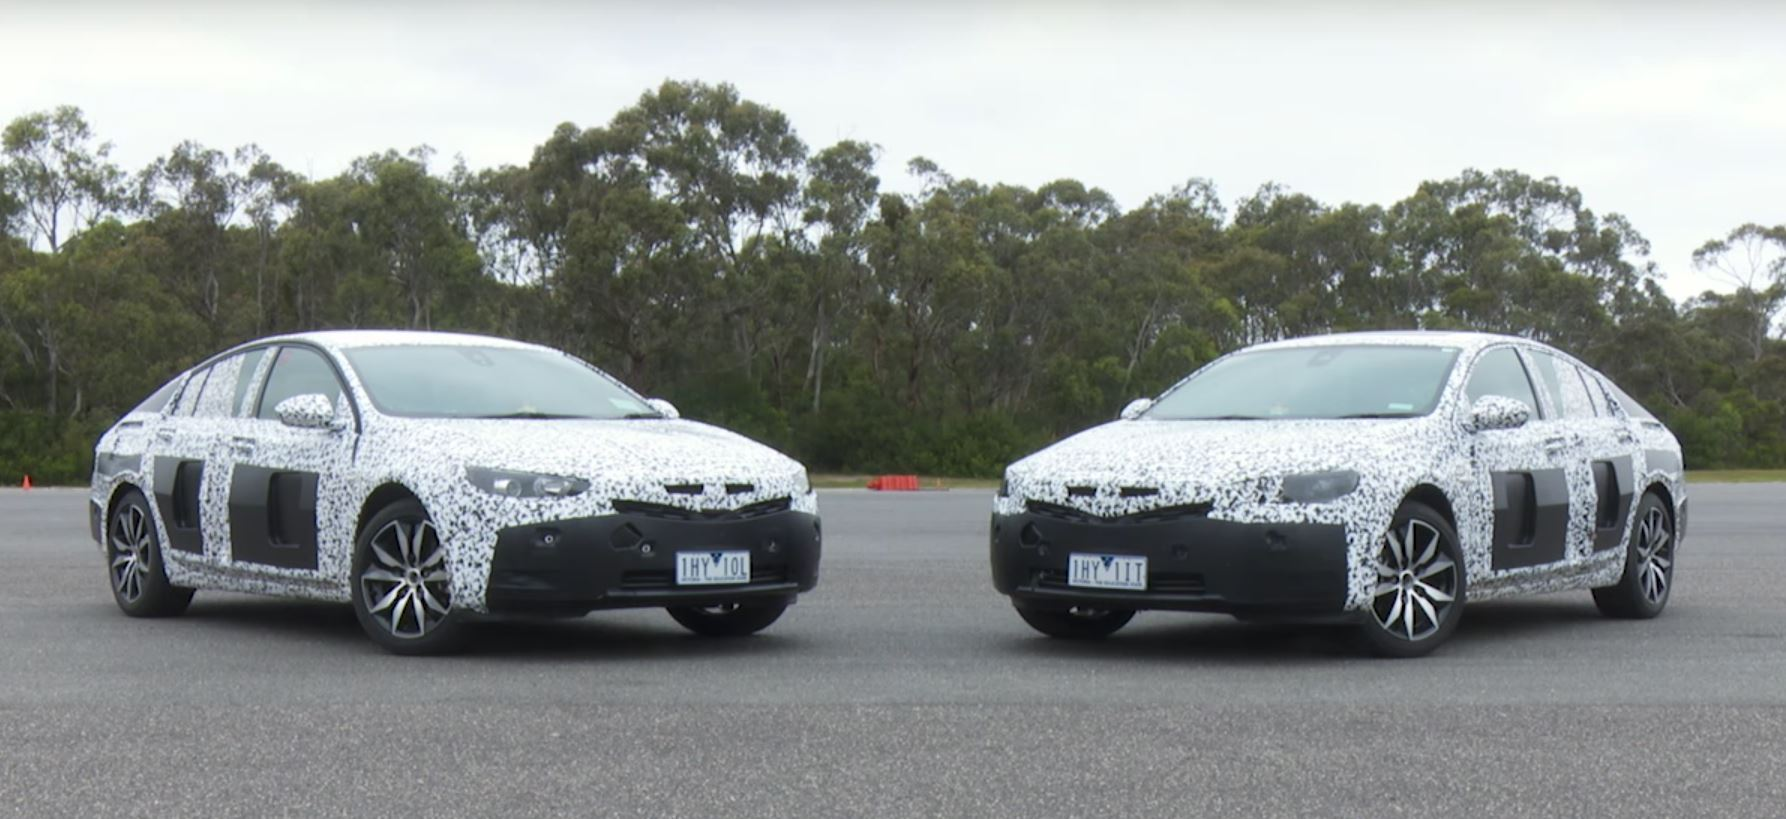 Beautiful 2018 Holden Commodore Opel Insignia B Prototypes Tested In Australia